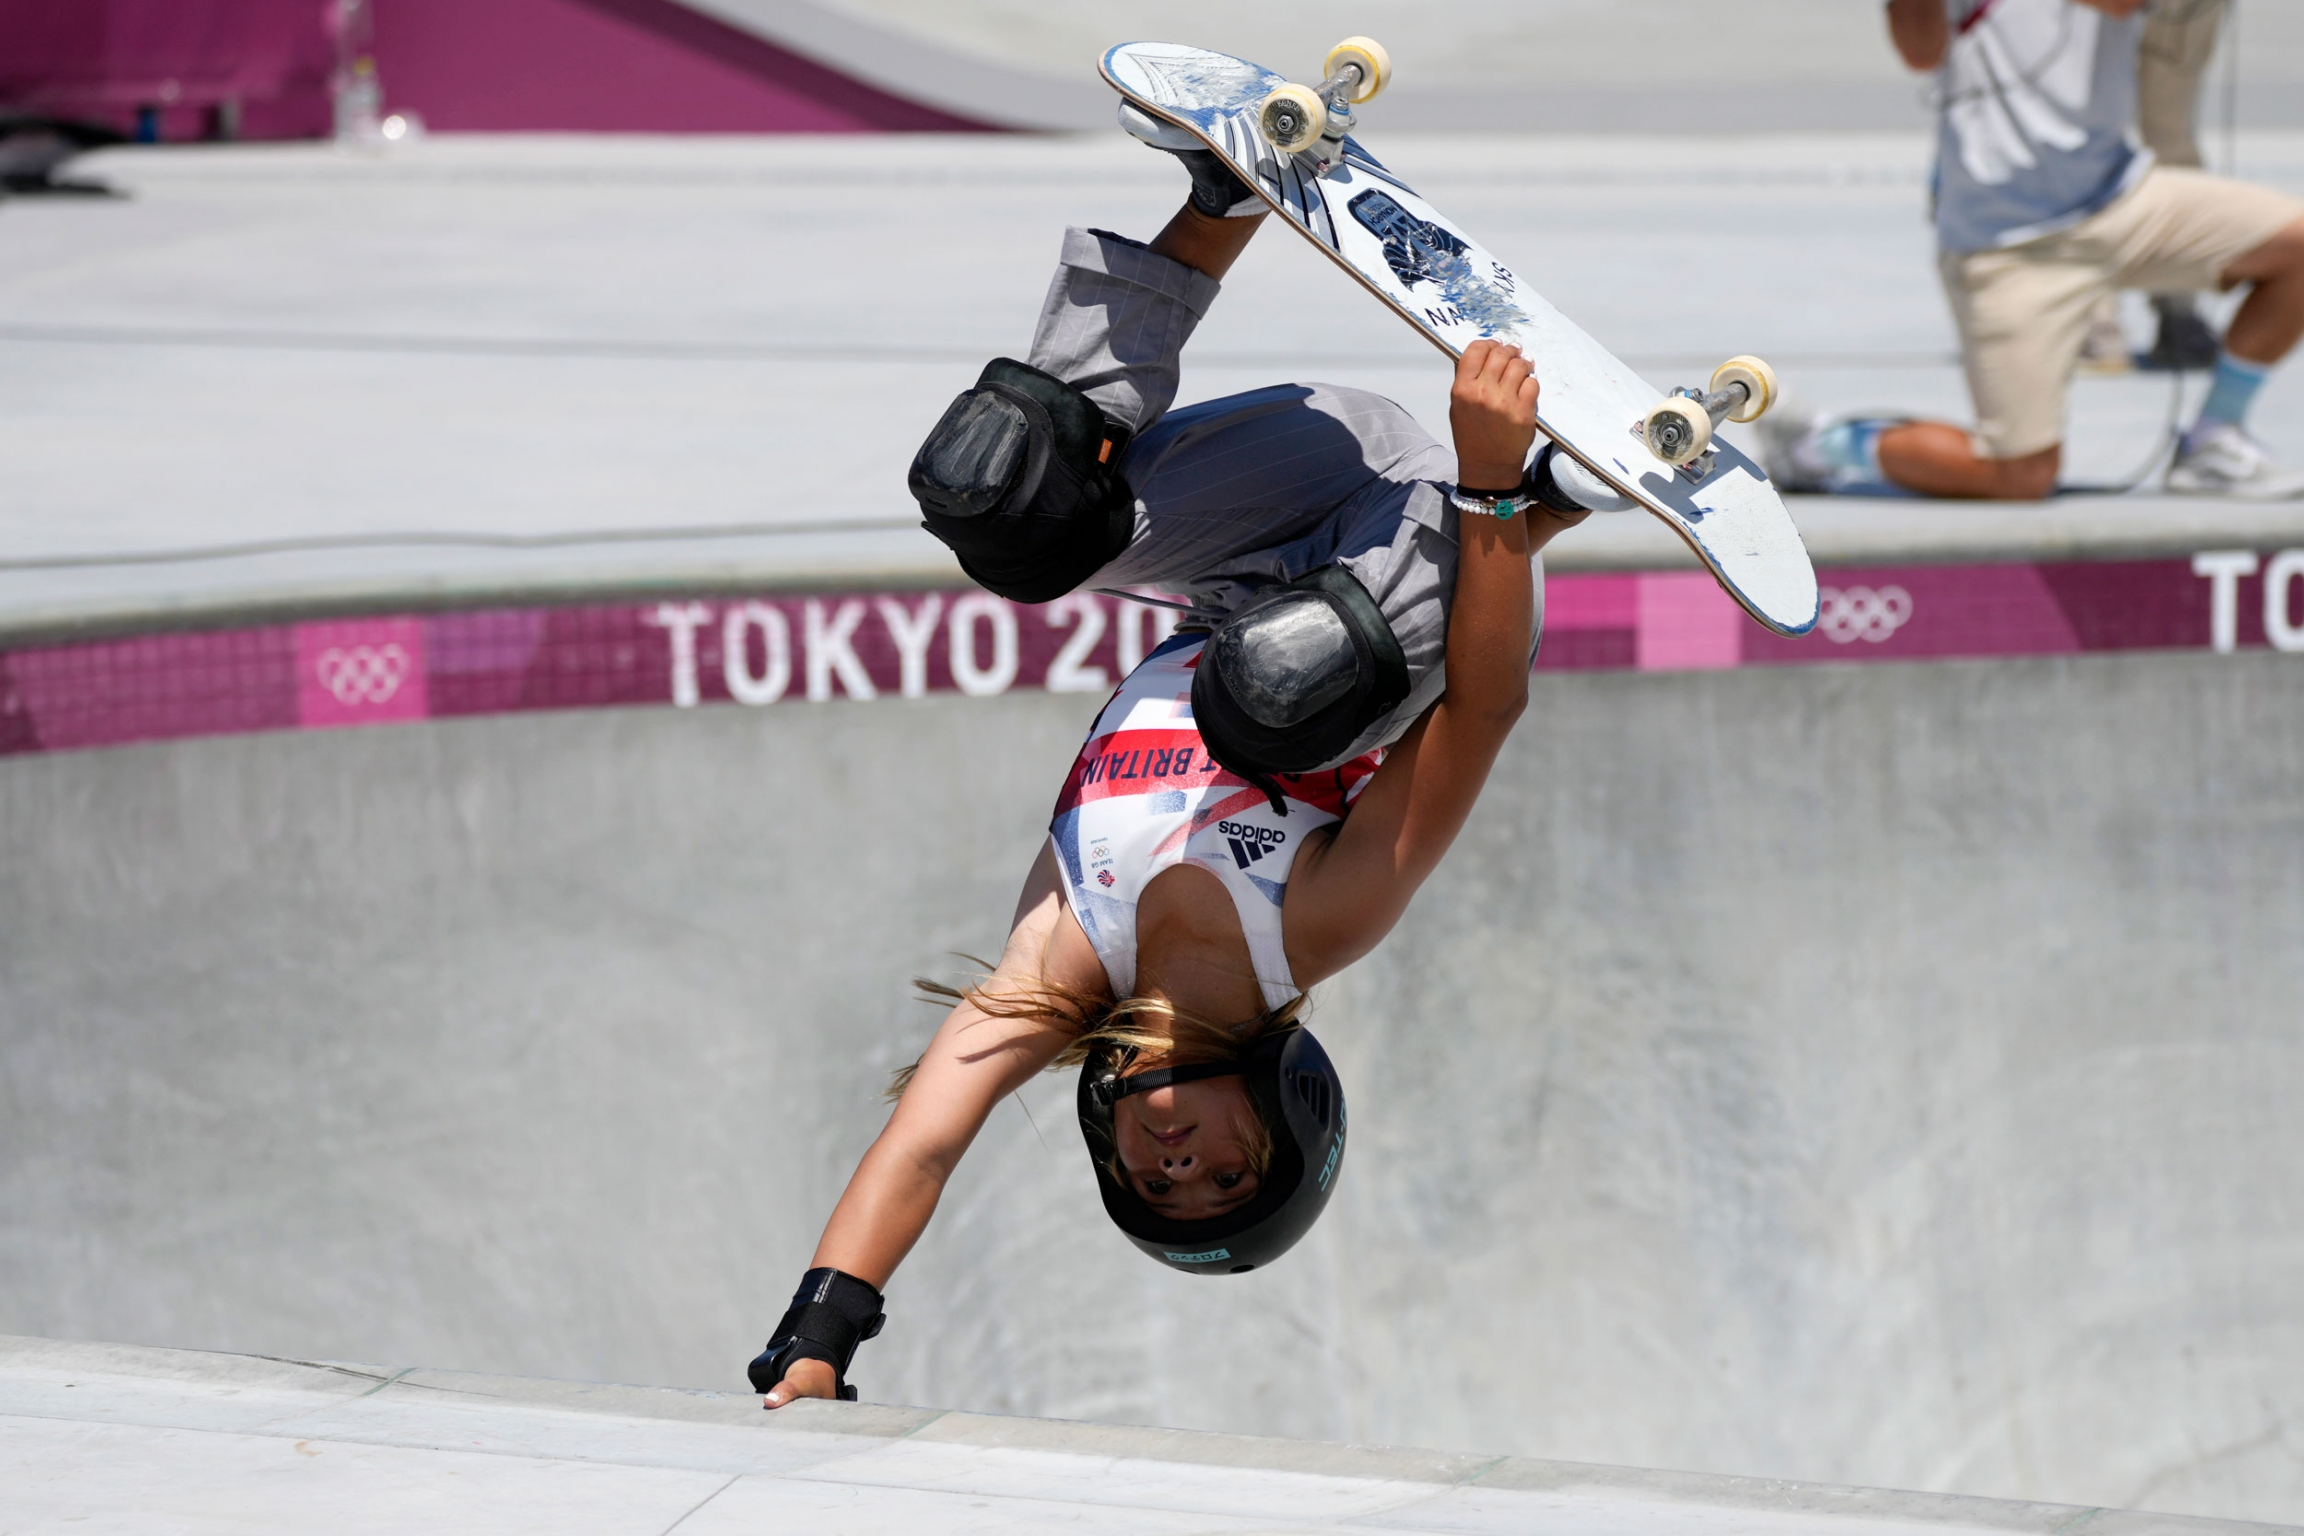 Sky Brown of Britain is shown upside down with her skateboard held against her feet and her right arm holding on to the edge of the park bowl.